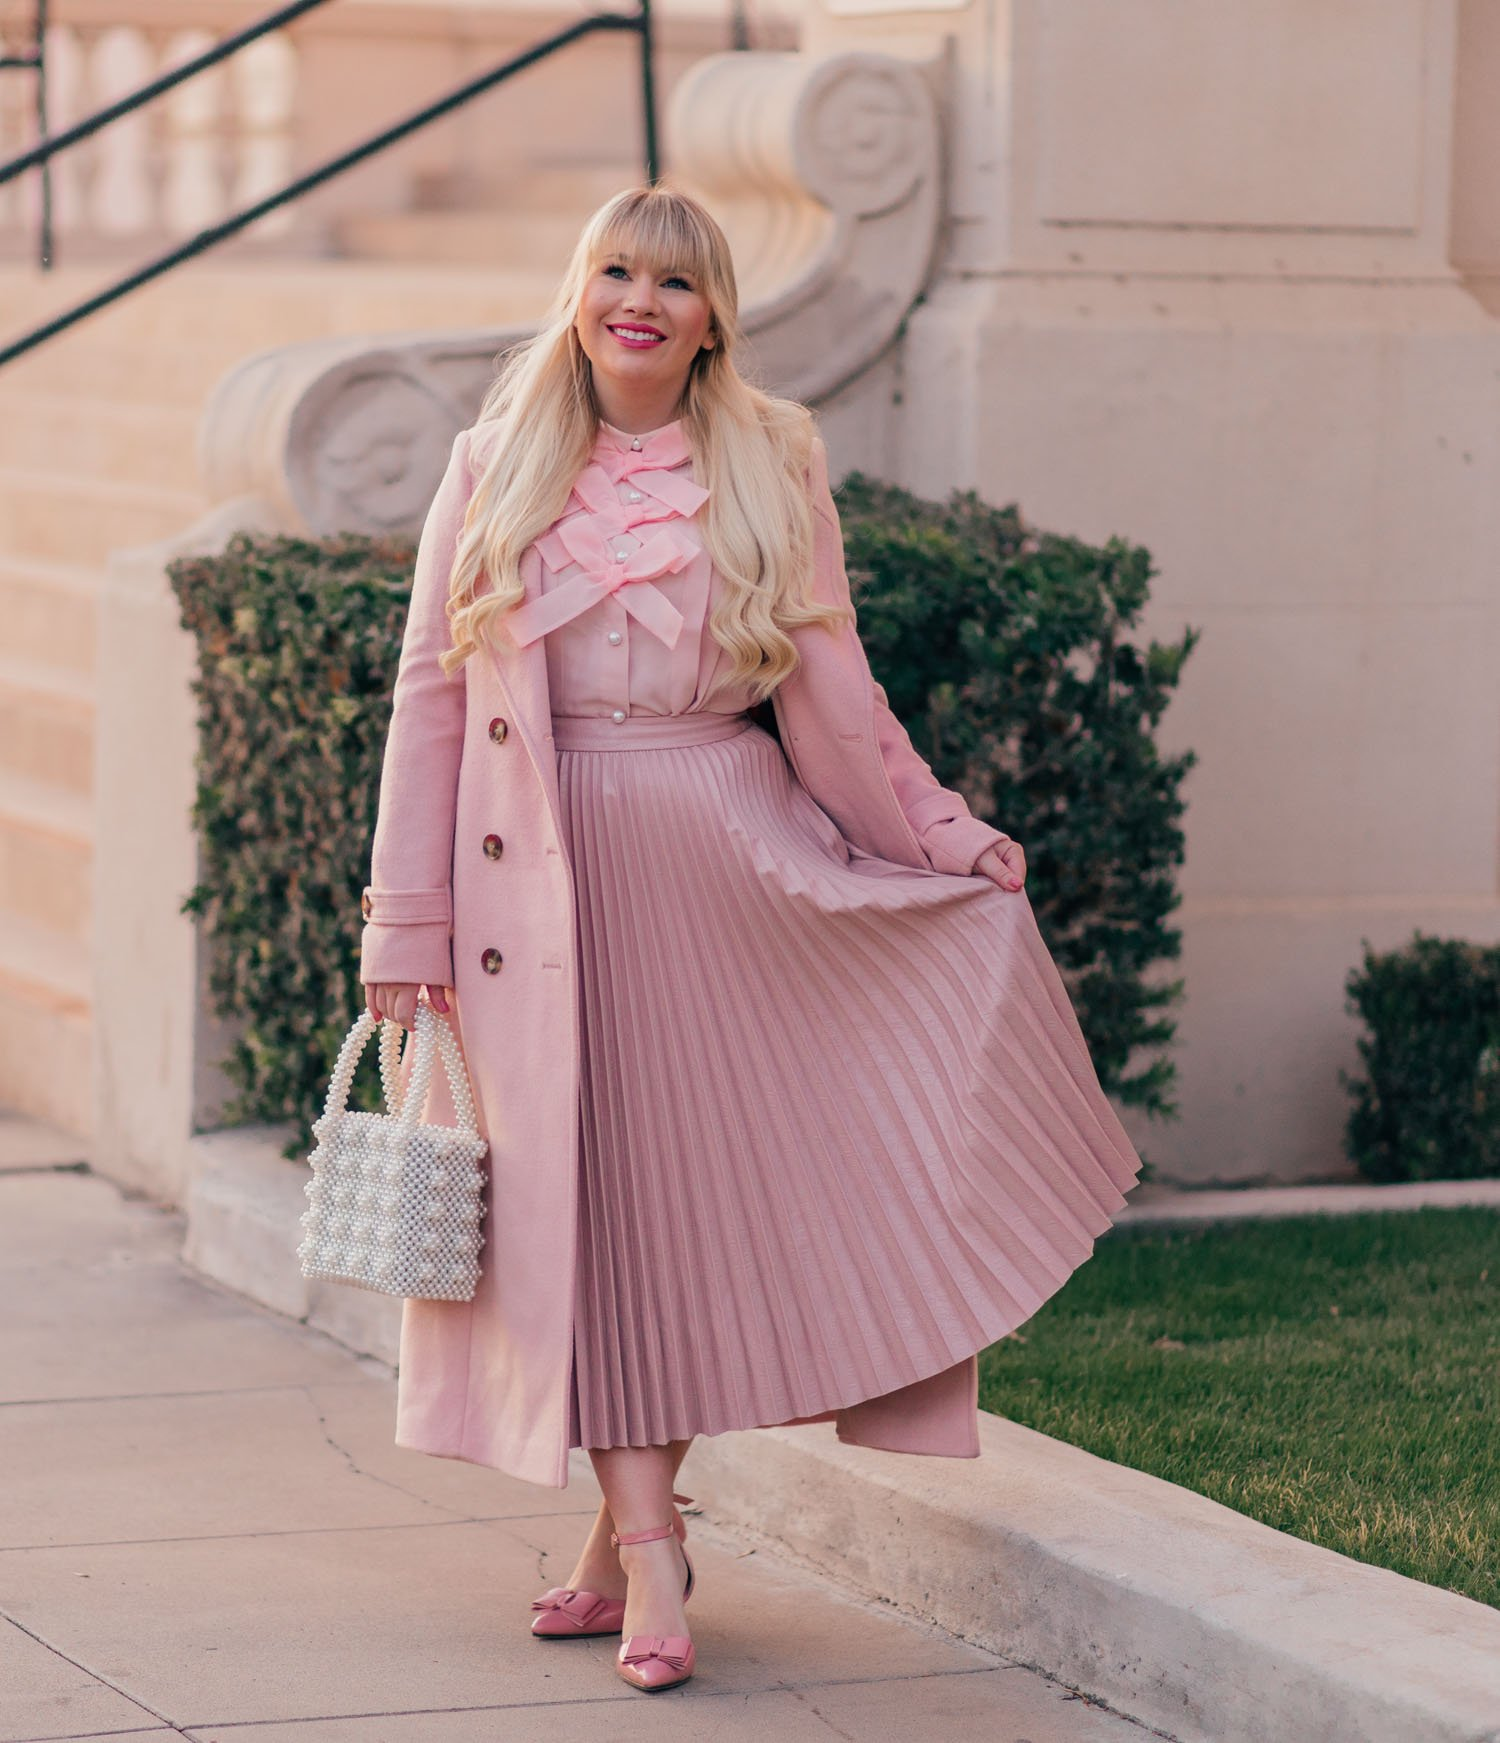 Elizabeth Hugen of Lizzie in Lace styles a pink monochrome outfit from Halogen!